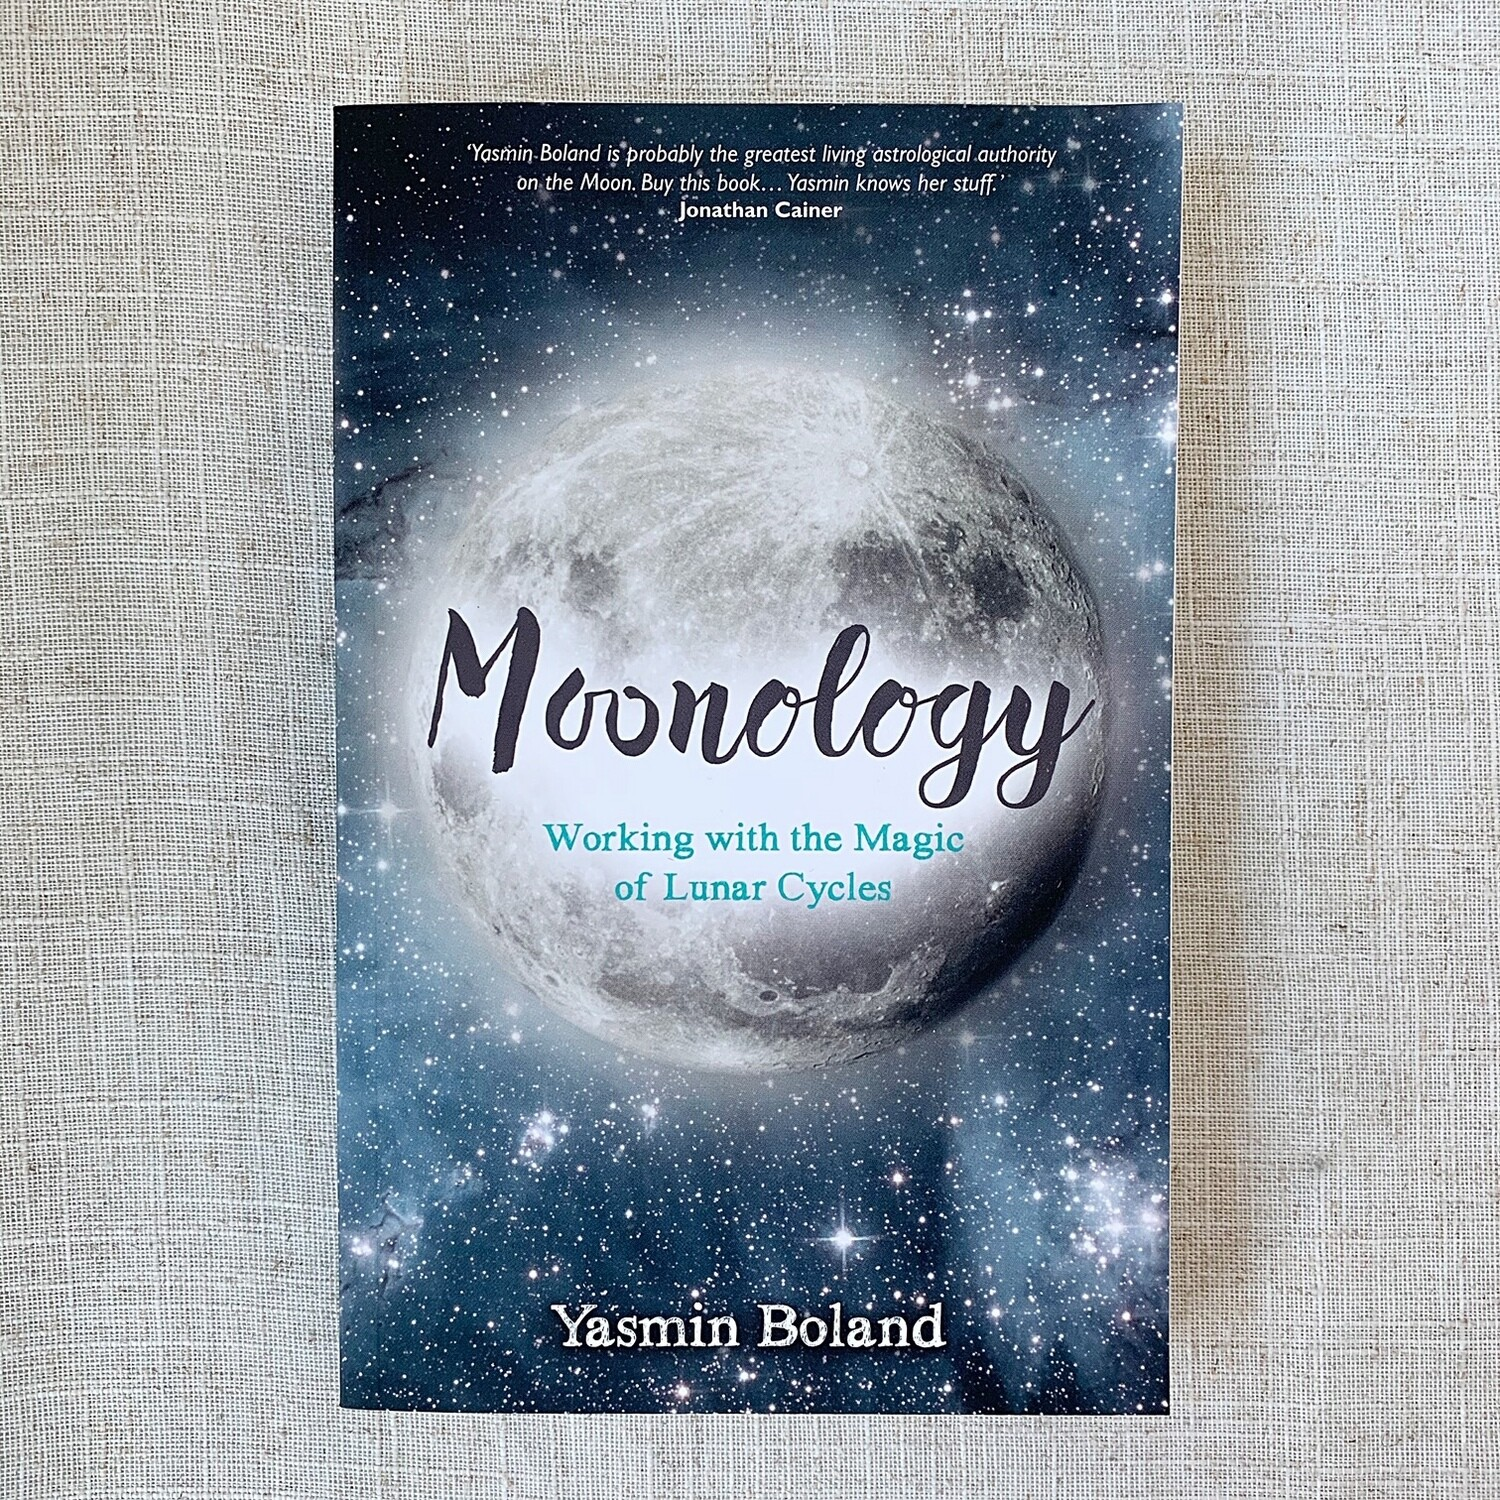 Moonology ~ Working with the Magic of Lunar Cycles